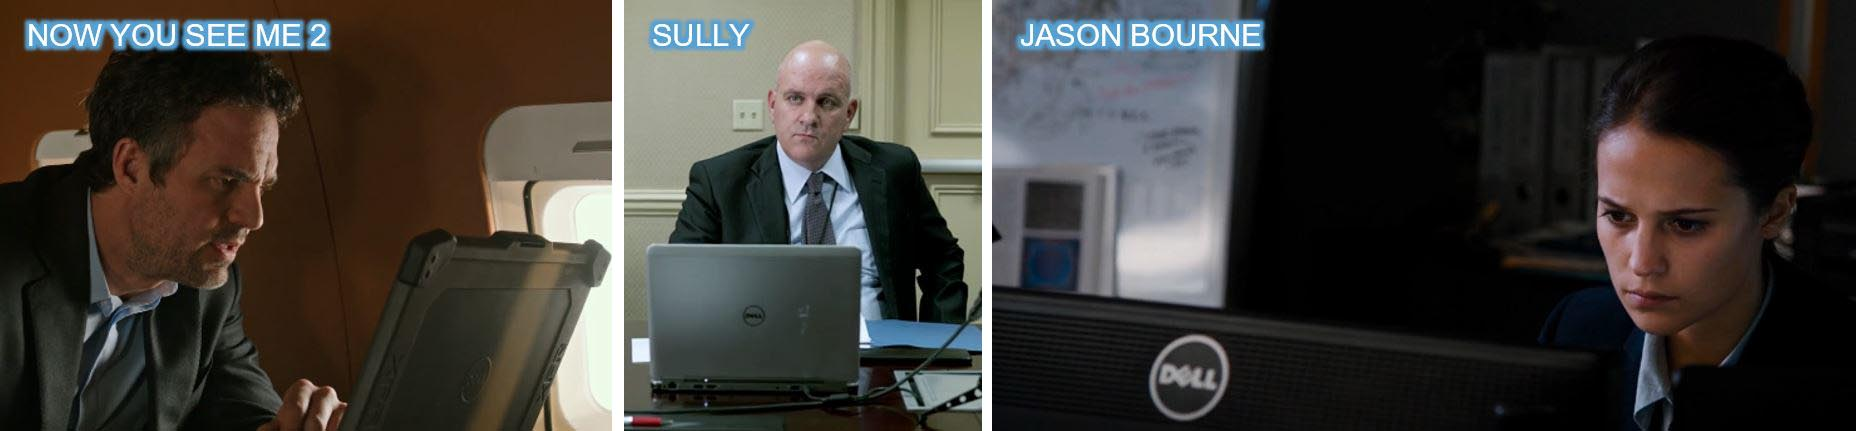 DEll in movies concave brand tracking 2016 top 10 Brands top 10 product placement sully jason bourne now you seem me 2